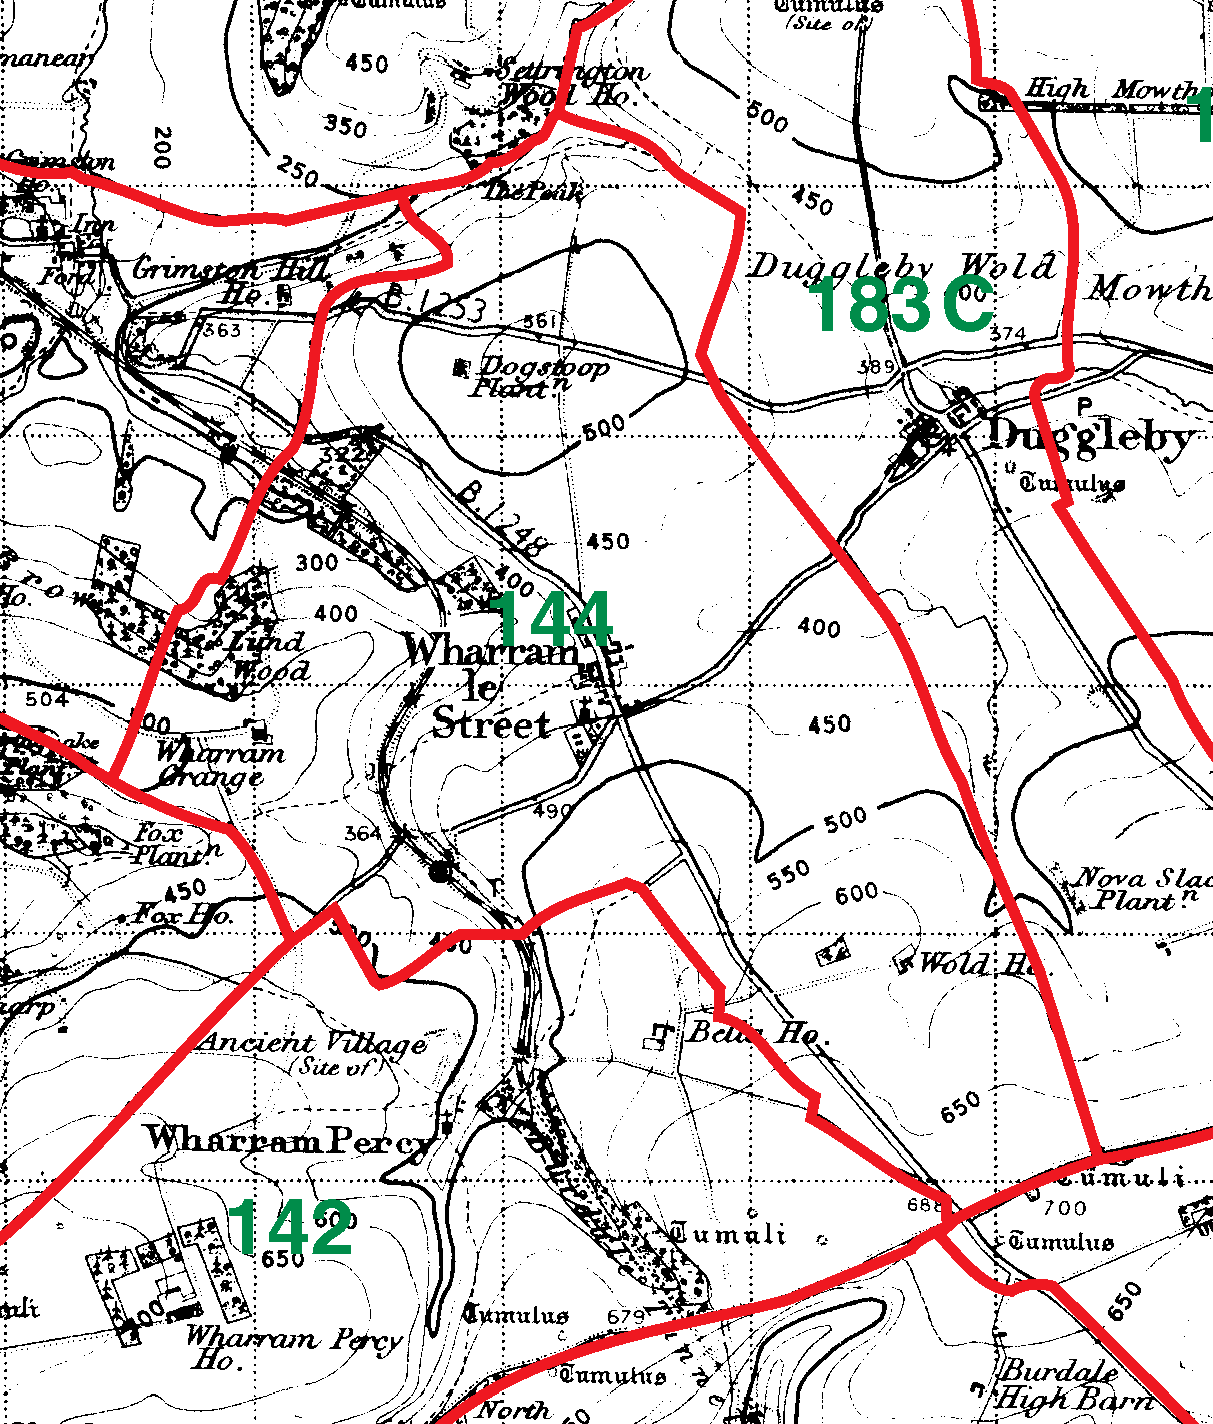 Wharram Le Street boundaries map